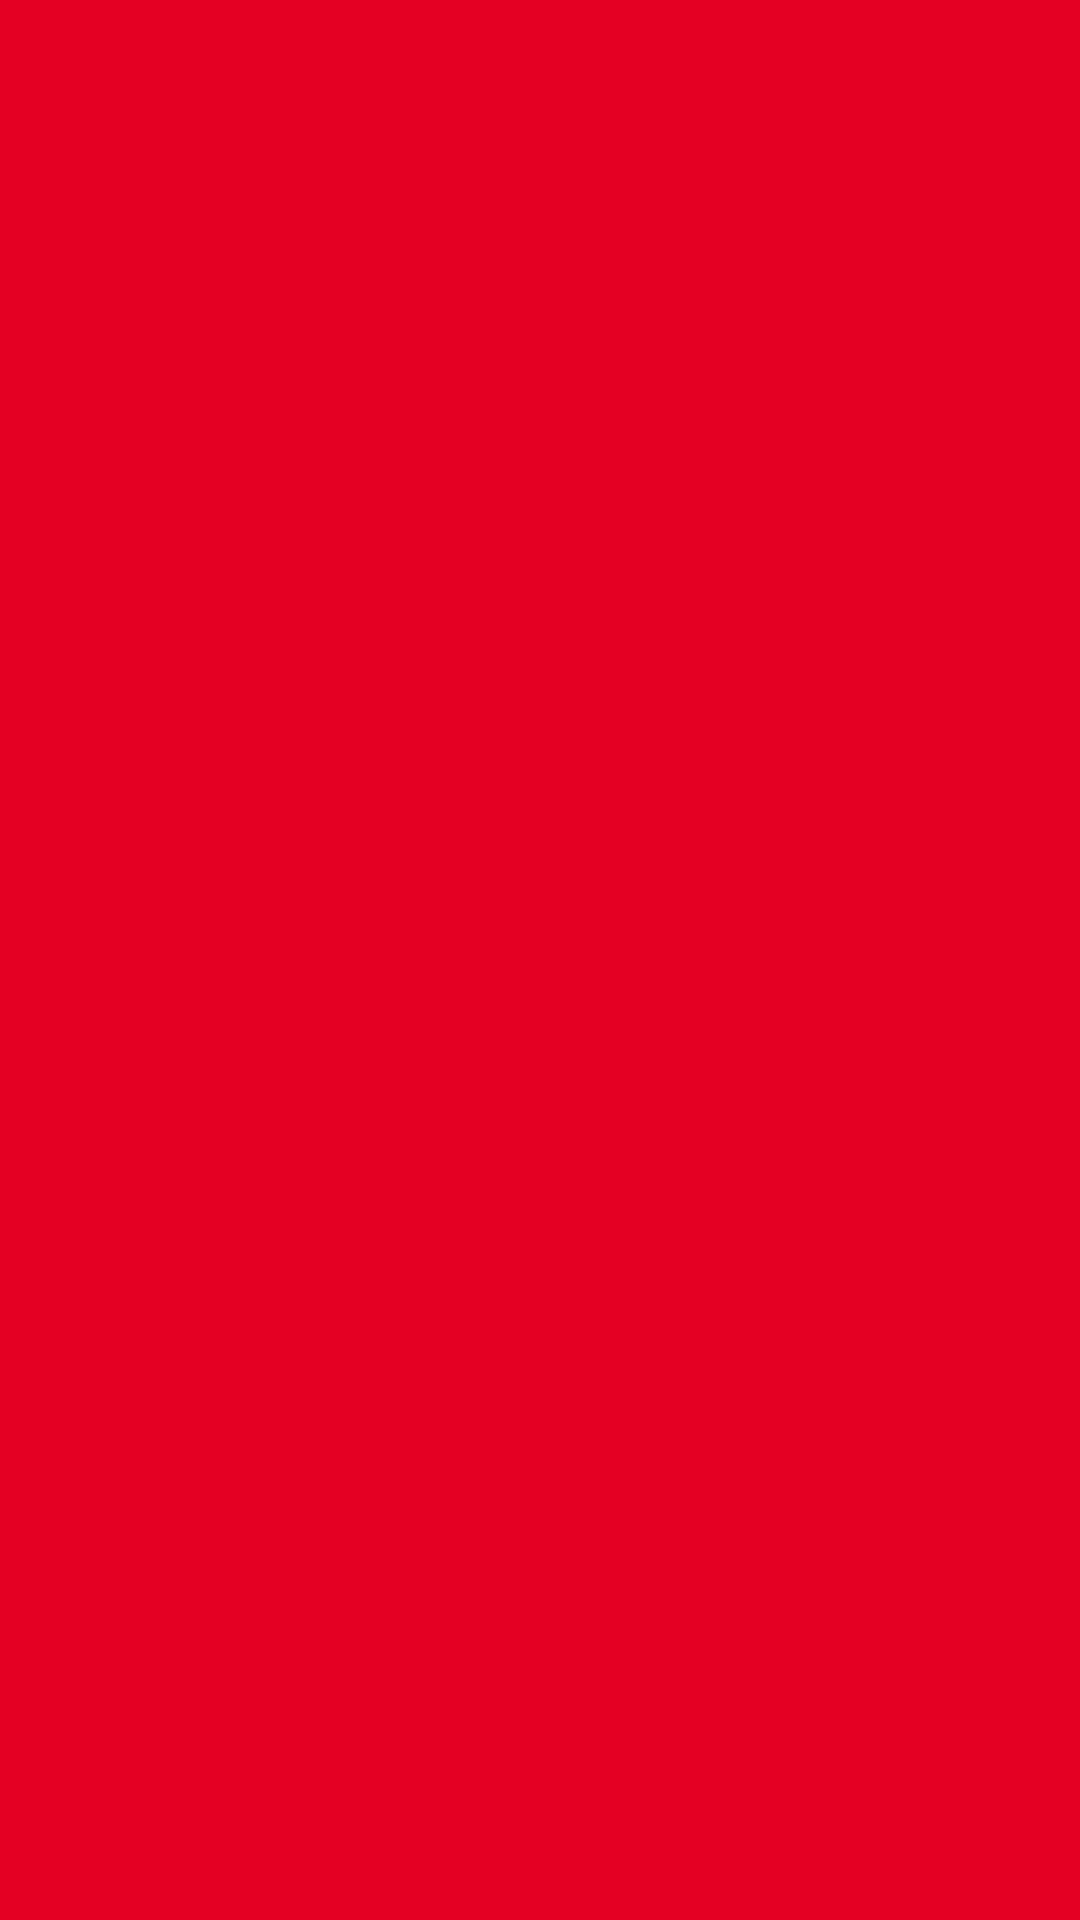 1080x1920 Cadmium Red Solid Color Background